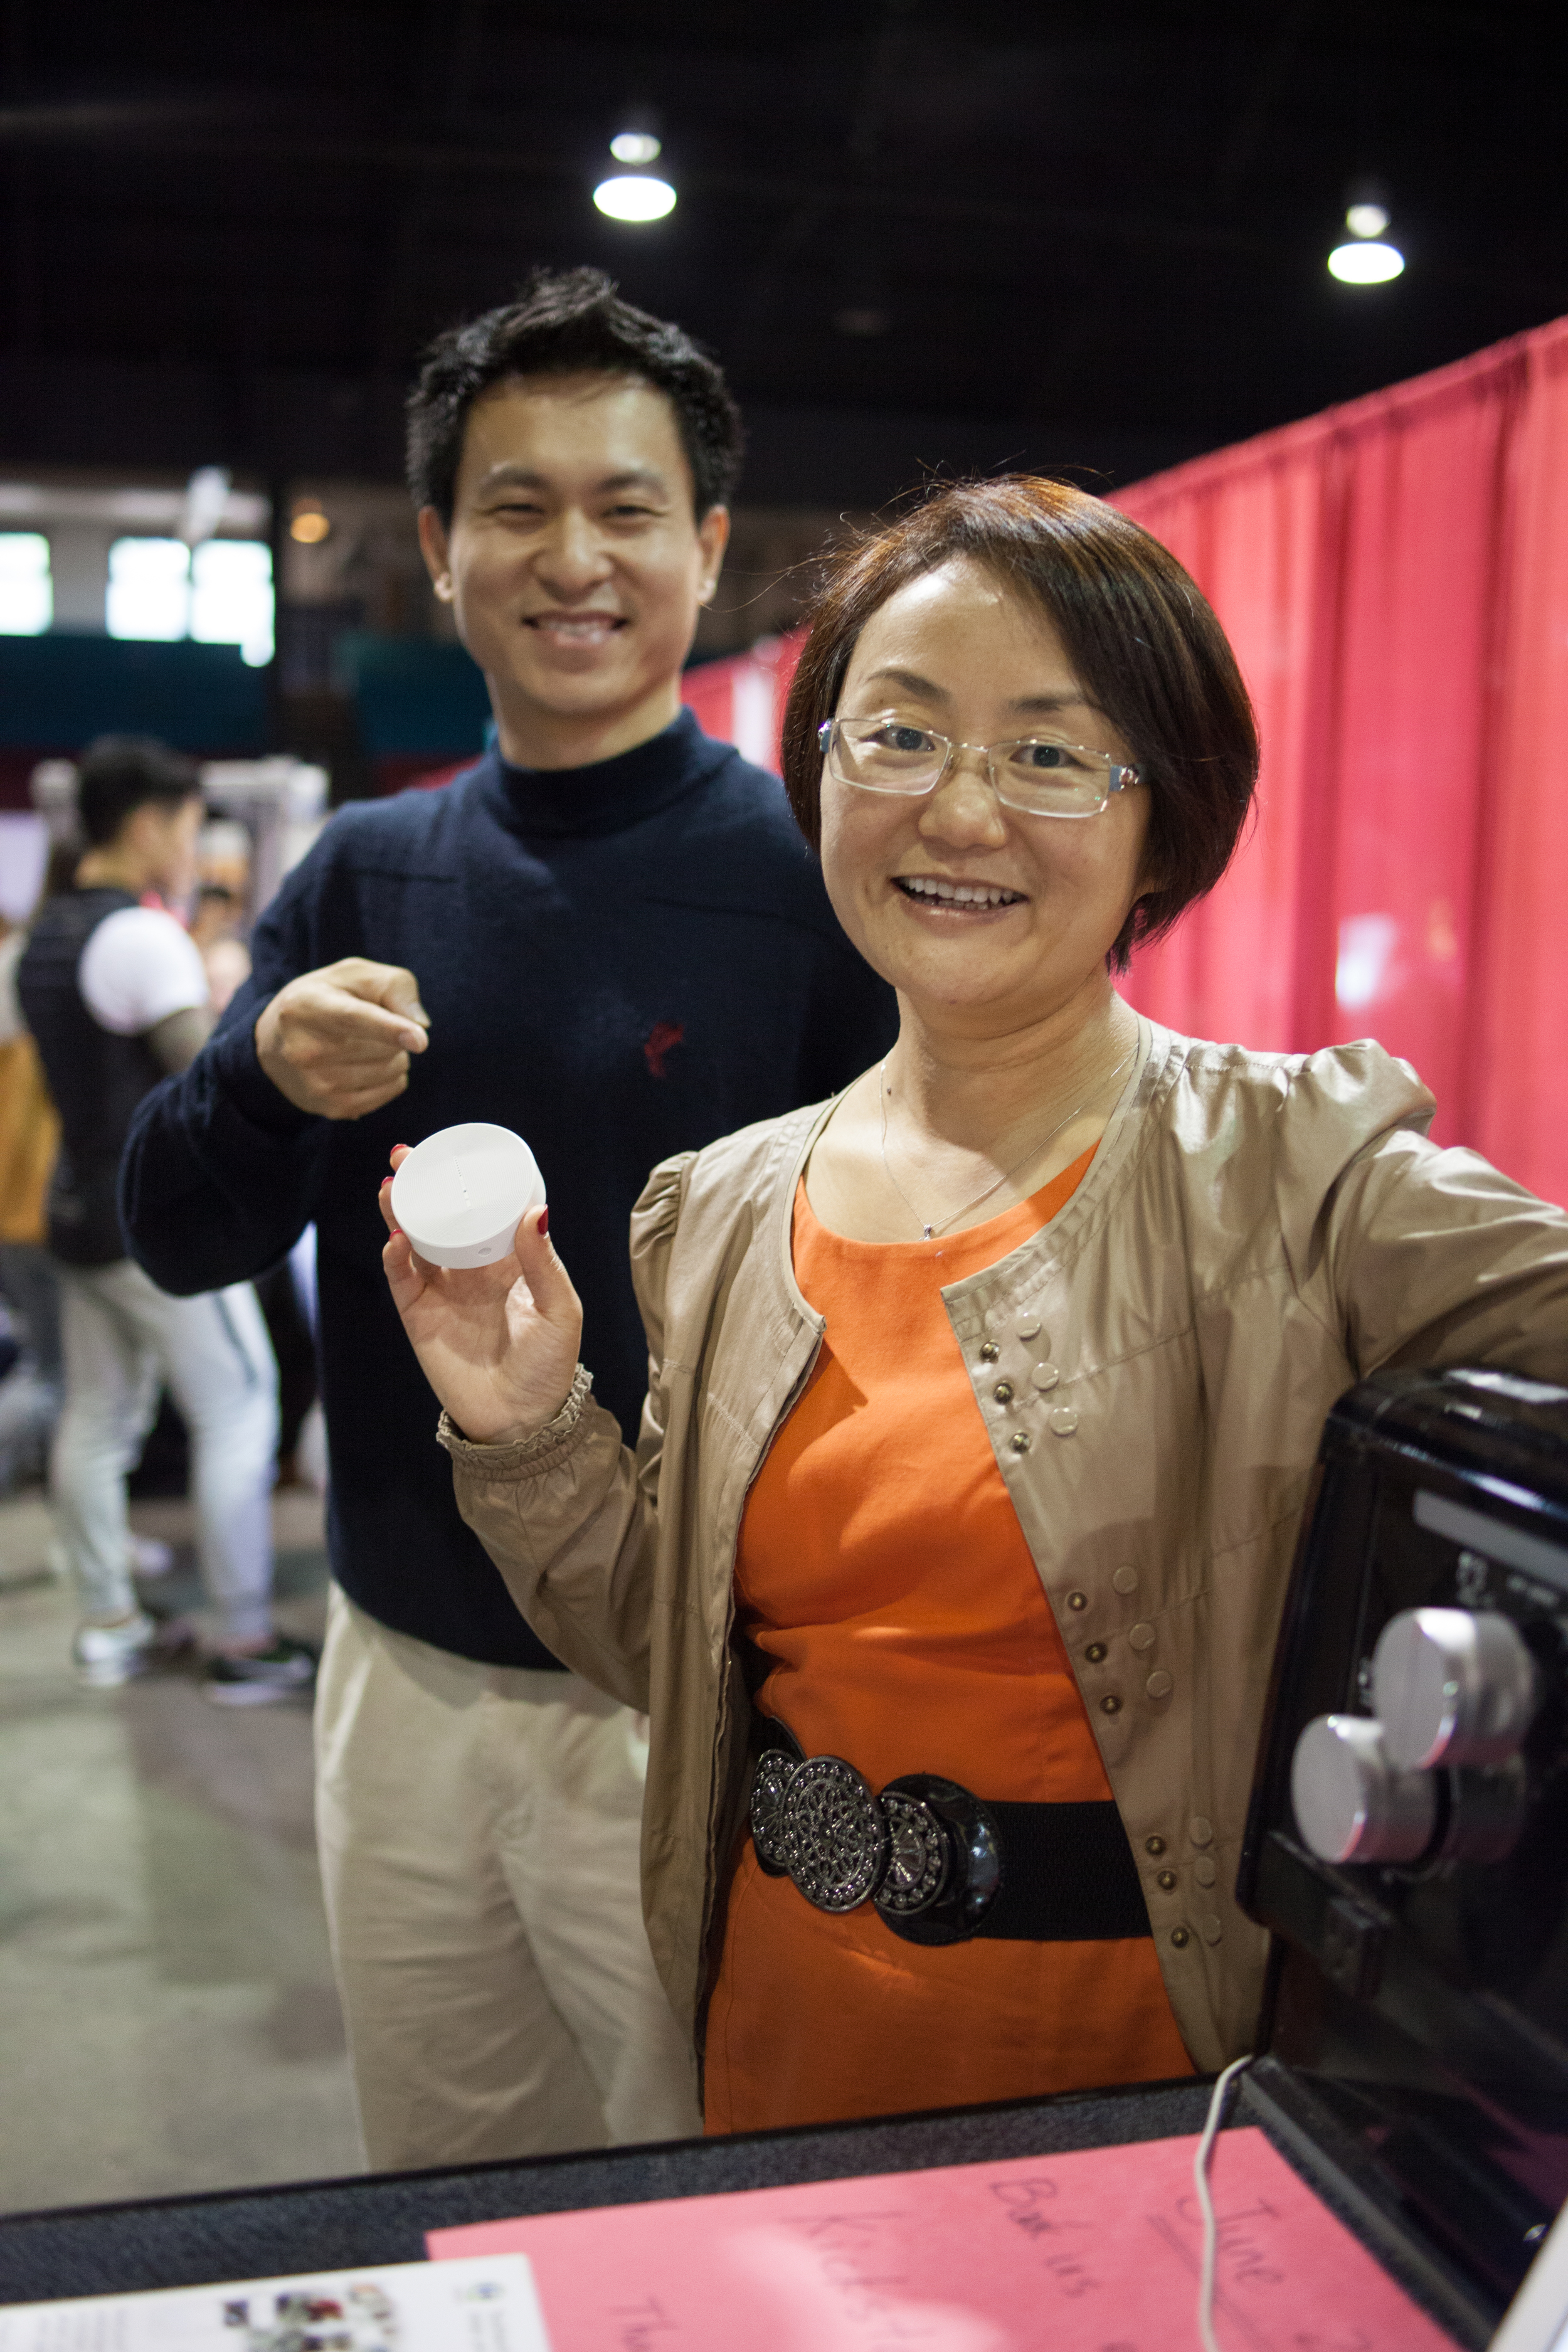 Jessica Yang @ Tochtech Technologies, smart solutions for safe living and remote caring for seniors.